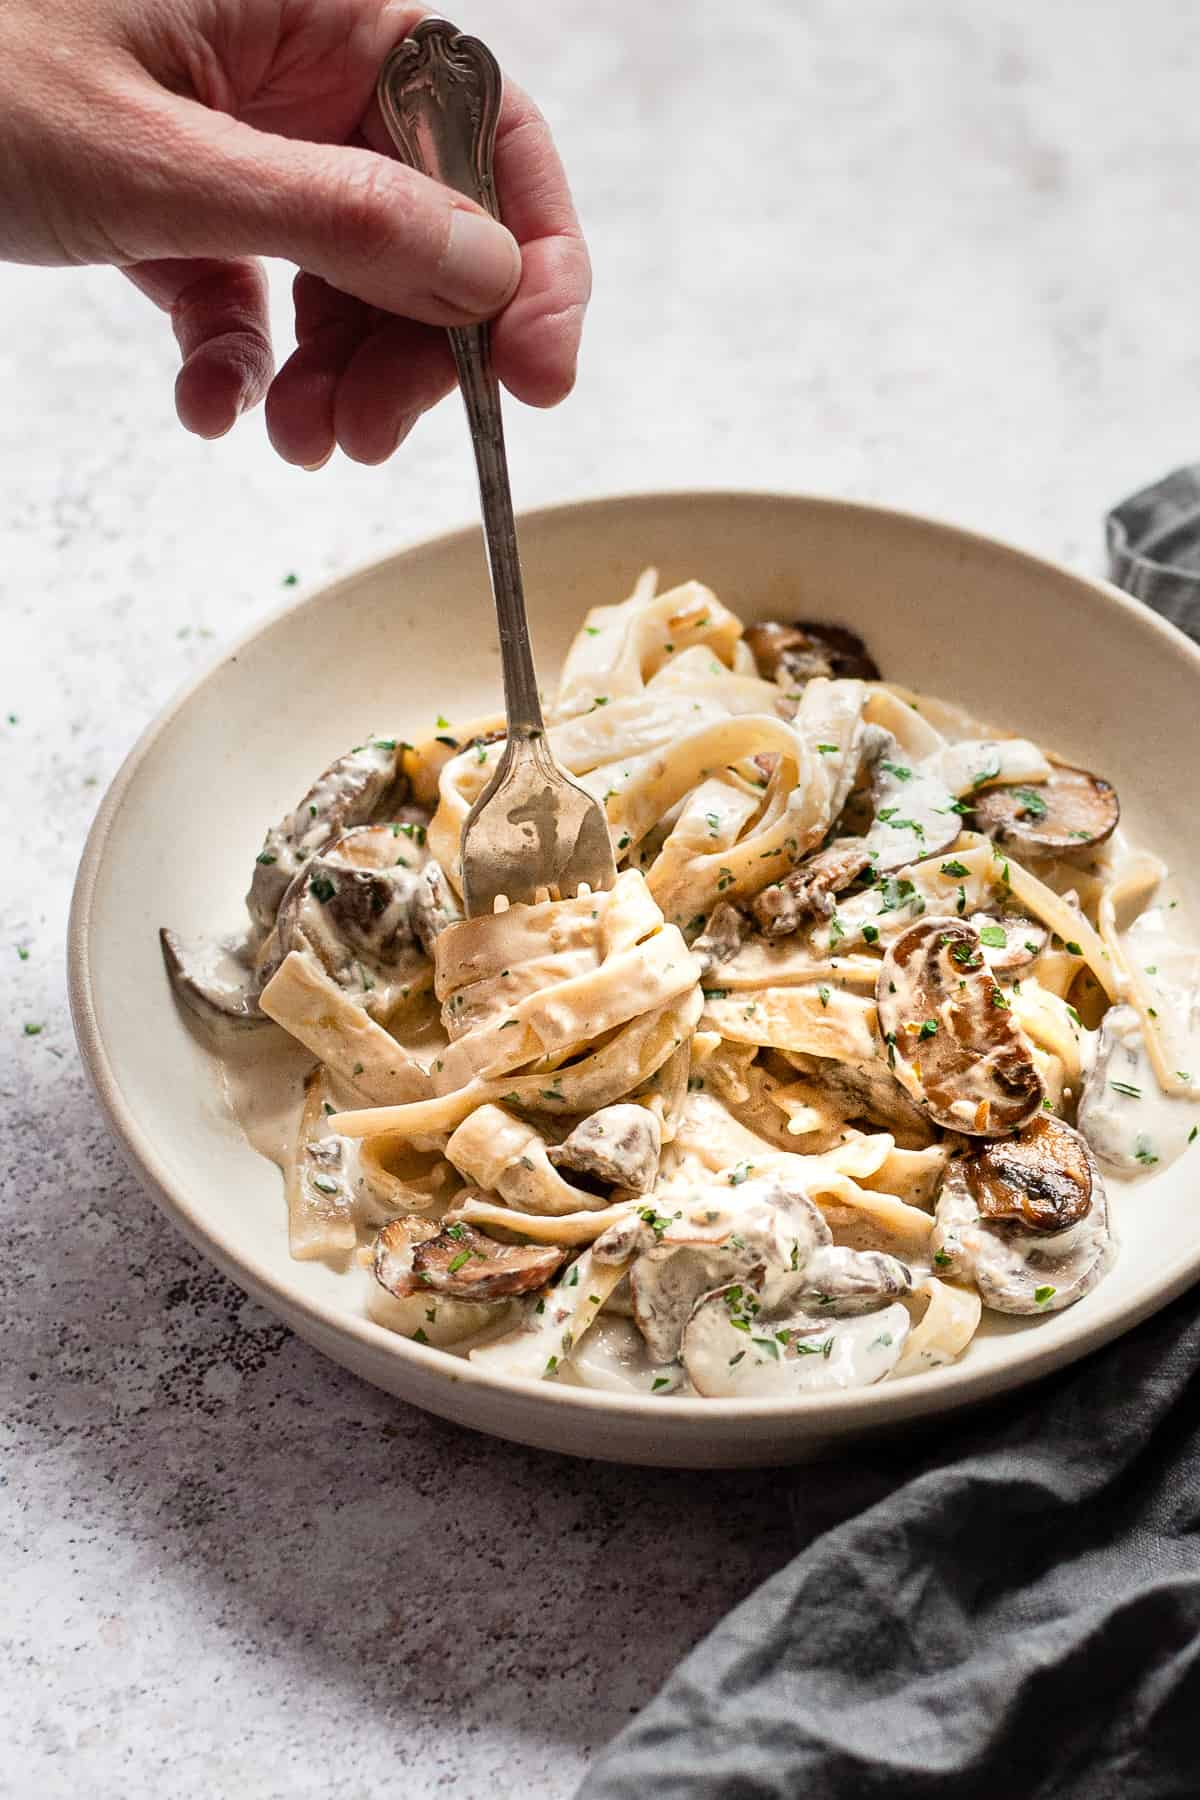 mushroom tagliatelle in garlic sauce in a white bowl. All Aldi ingredients.